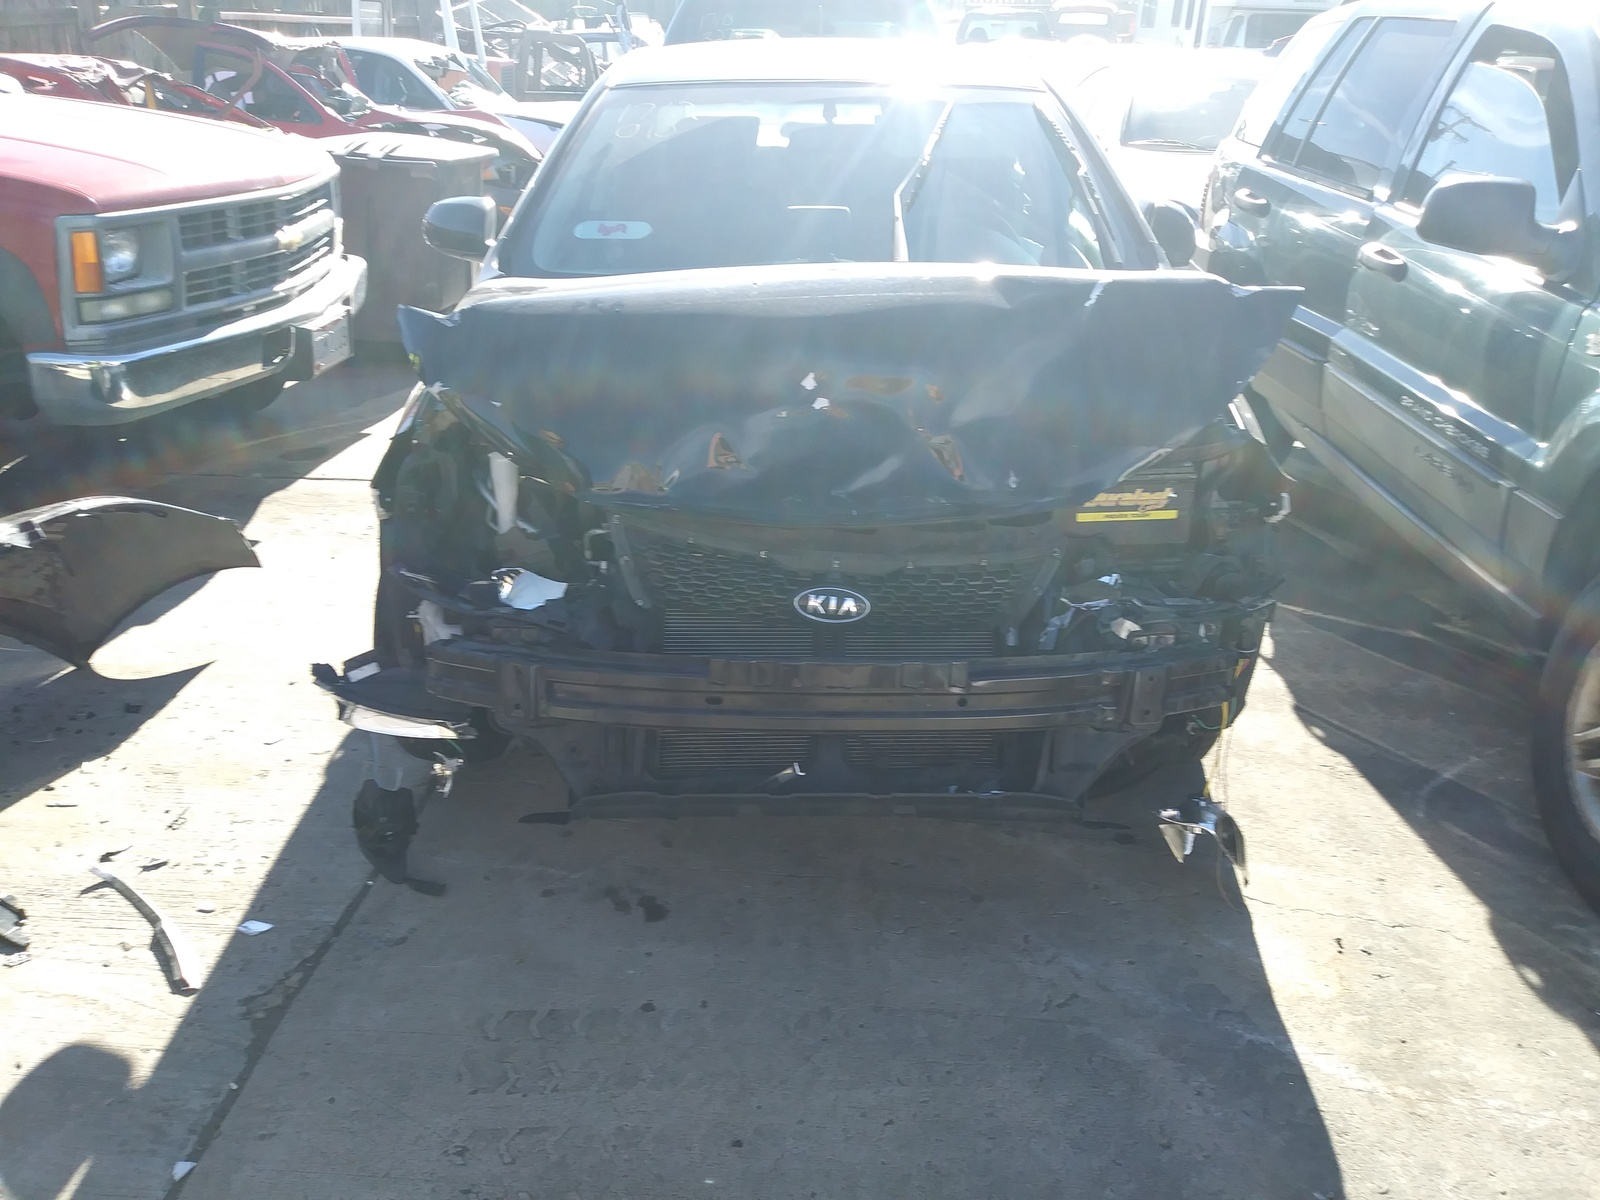 Kia Forte Questions - Has anyone had a problem with sudden